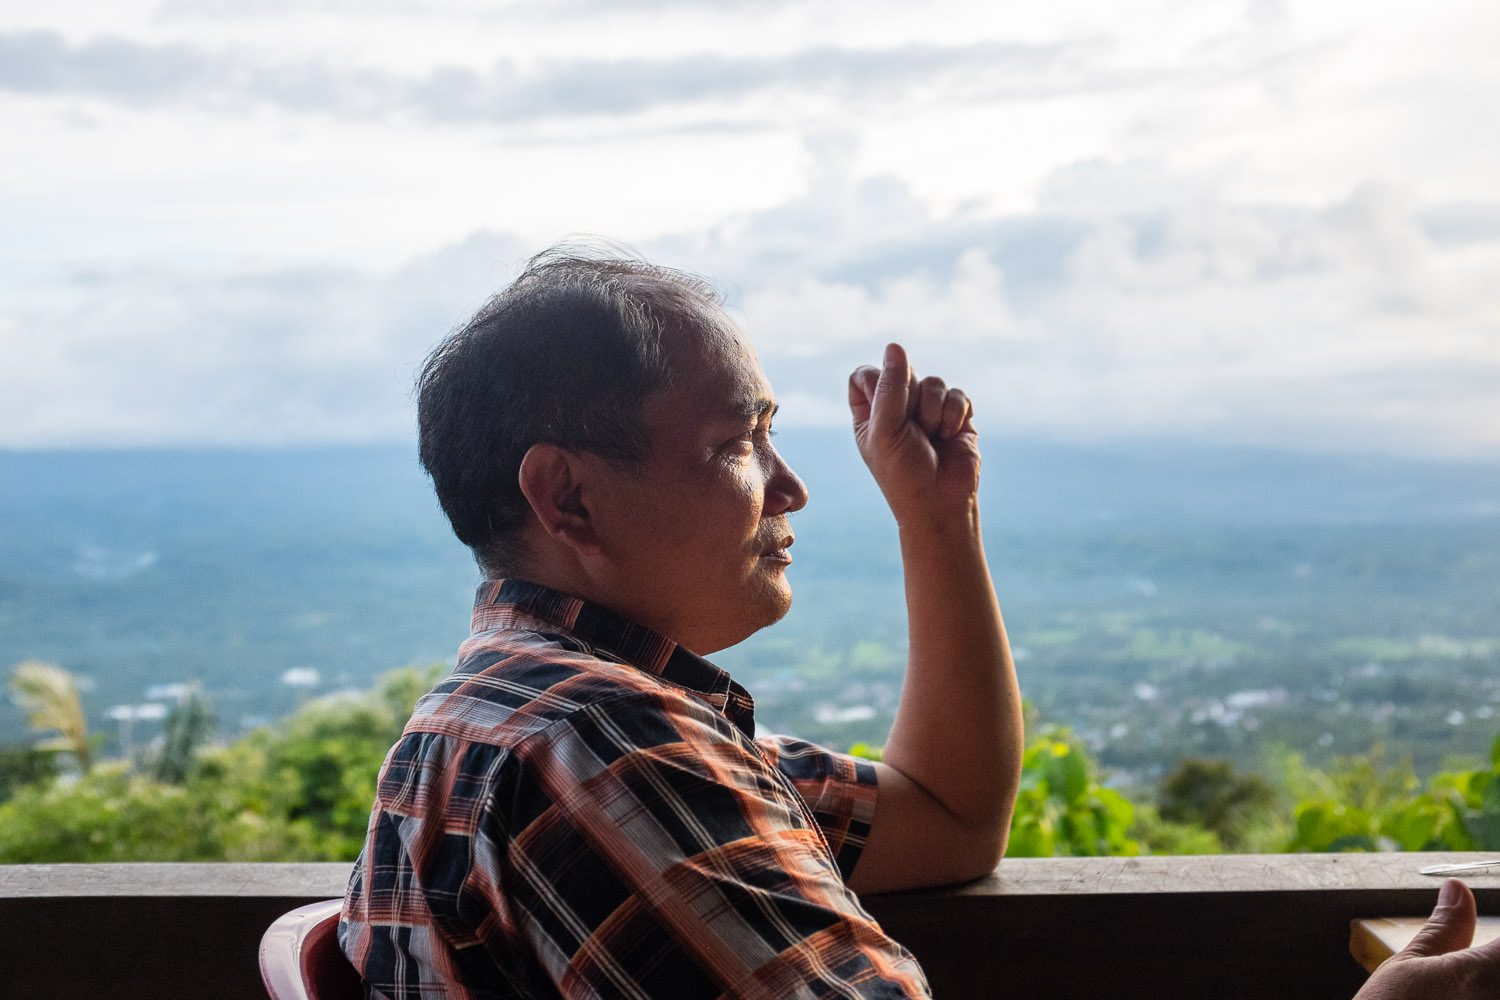 Ezra Sengkey, who came to be with his family and Vicky's after praying elsewhere, looks out over Sulawesi from the cafe next to a 62 meter high menorah, which was placed on one of Manado's highest mountains as a sign for the city's love of Israel.